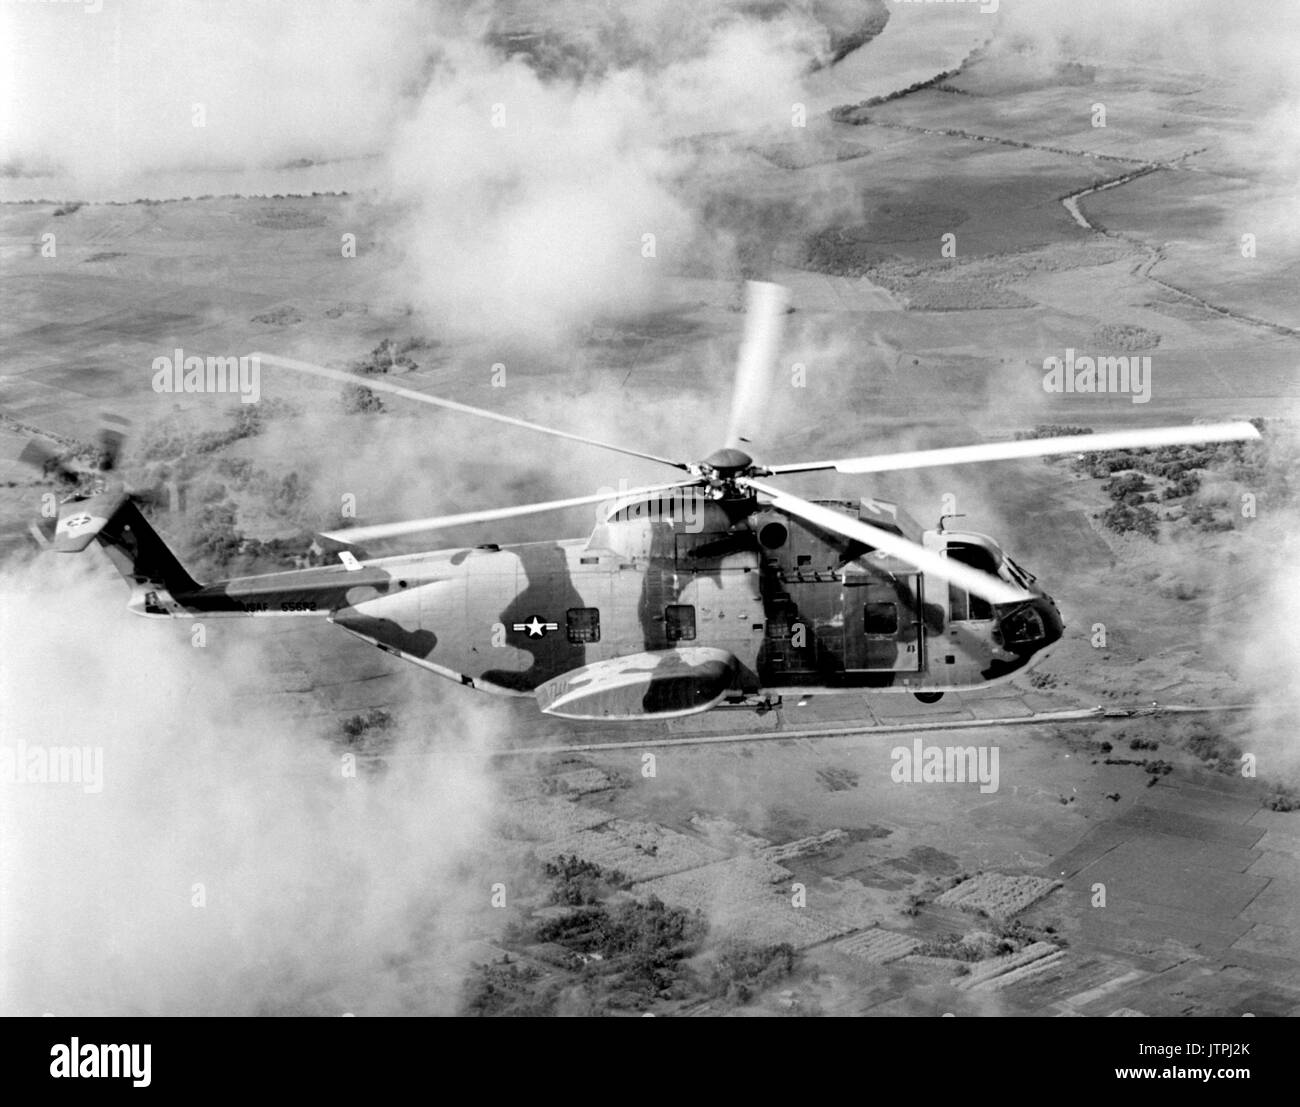 Air Force HH-3E Jolly Green Giant helicopters are used to rescue pilots downed in Vietnam or the South China Sea.  Flown by the 3rd Aerospace Rescue and Recovery Group, the rescue craft cruises at speeds up to 155 mph and is capable of in-flight refueling. - Stock Image